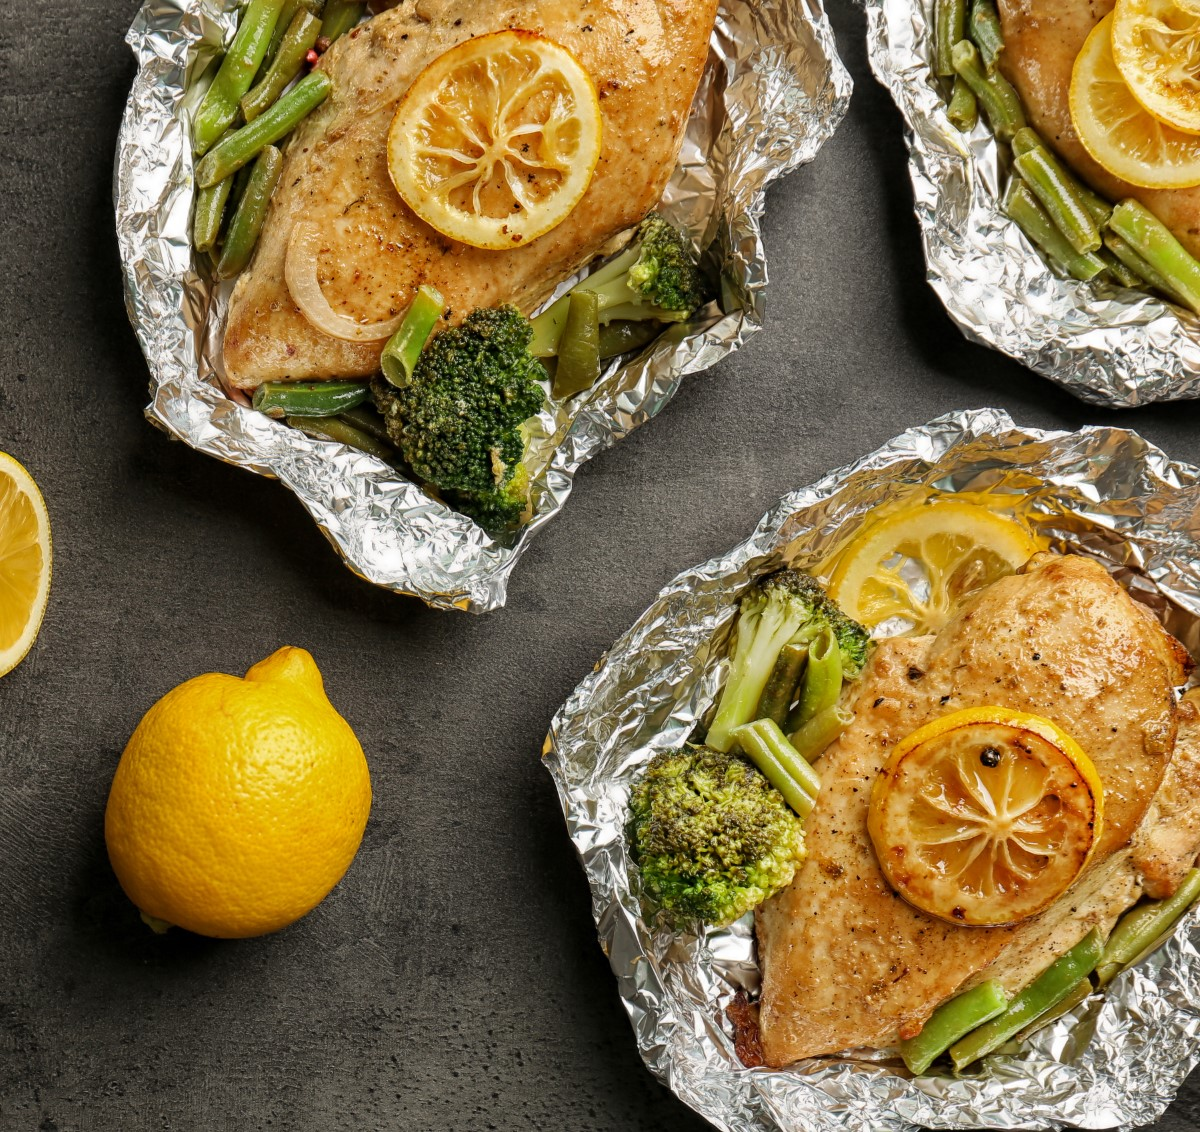 Lemon Chicken, Broccoli & String Beans Foil Packs